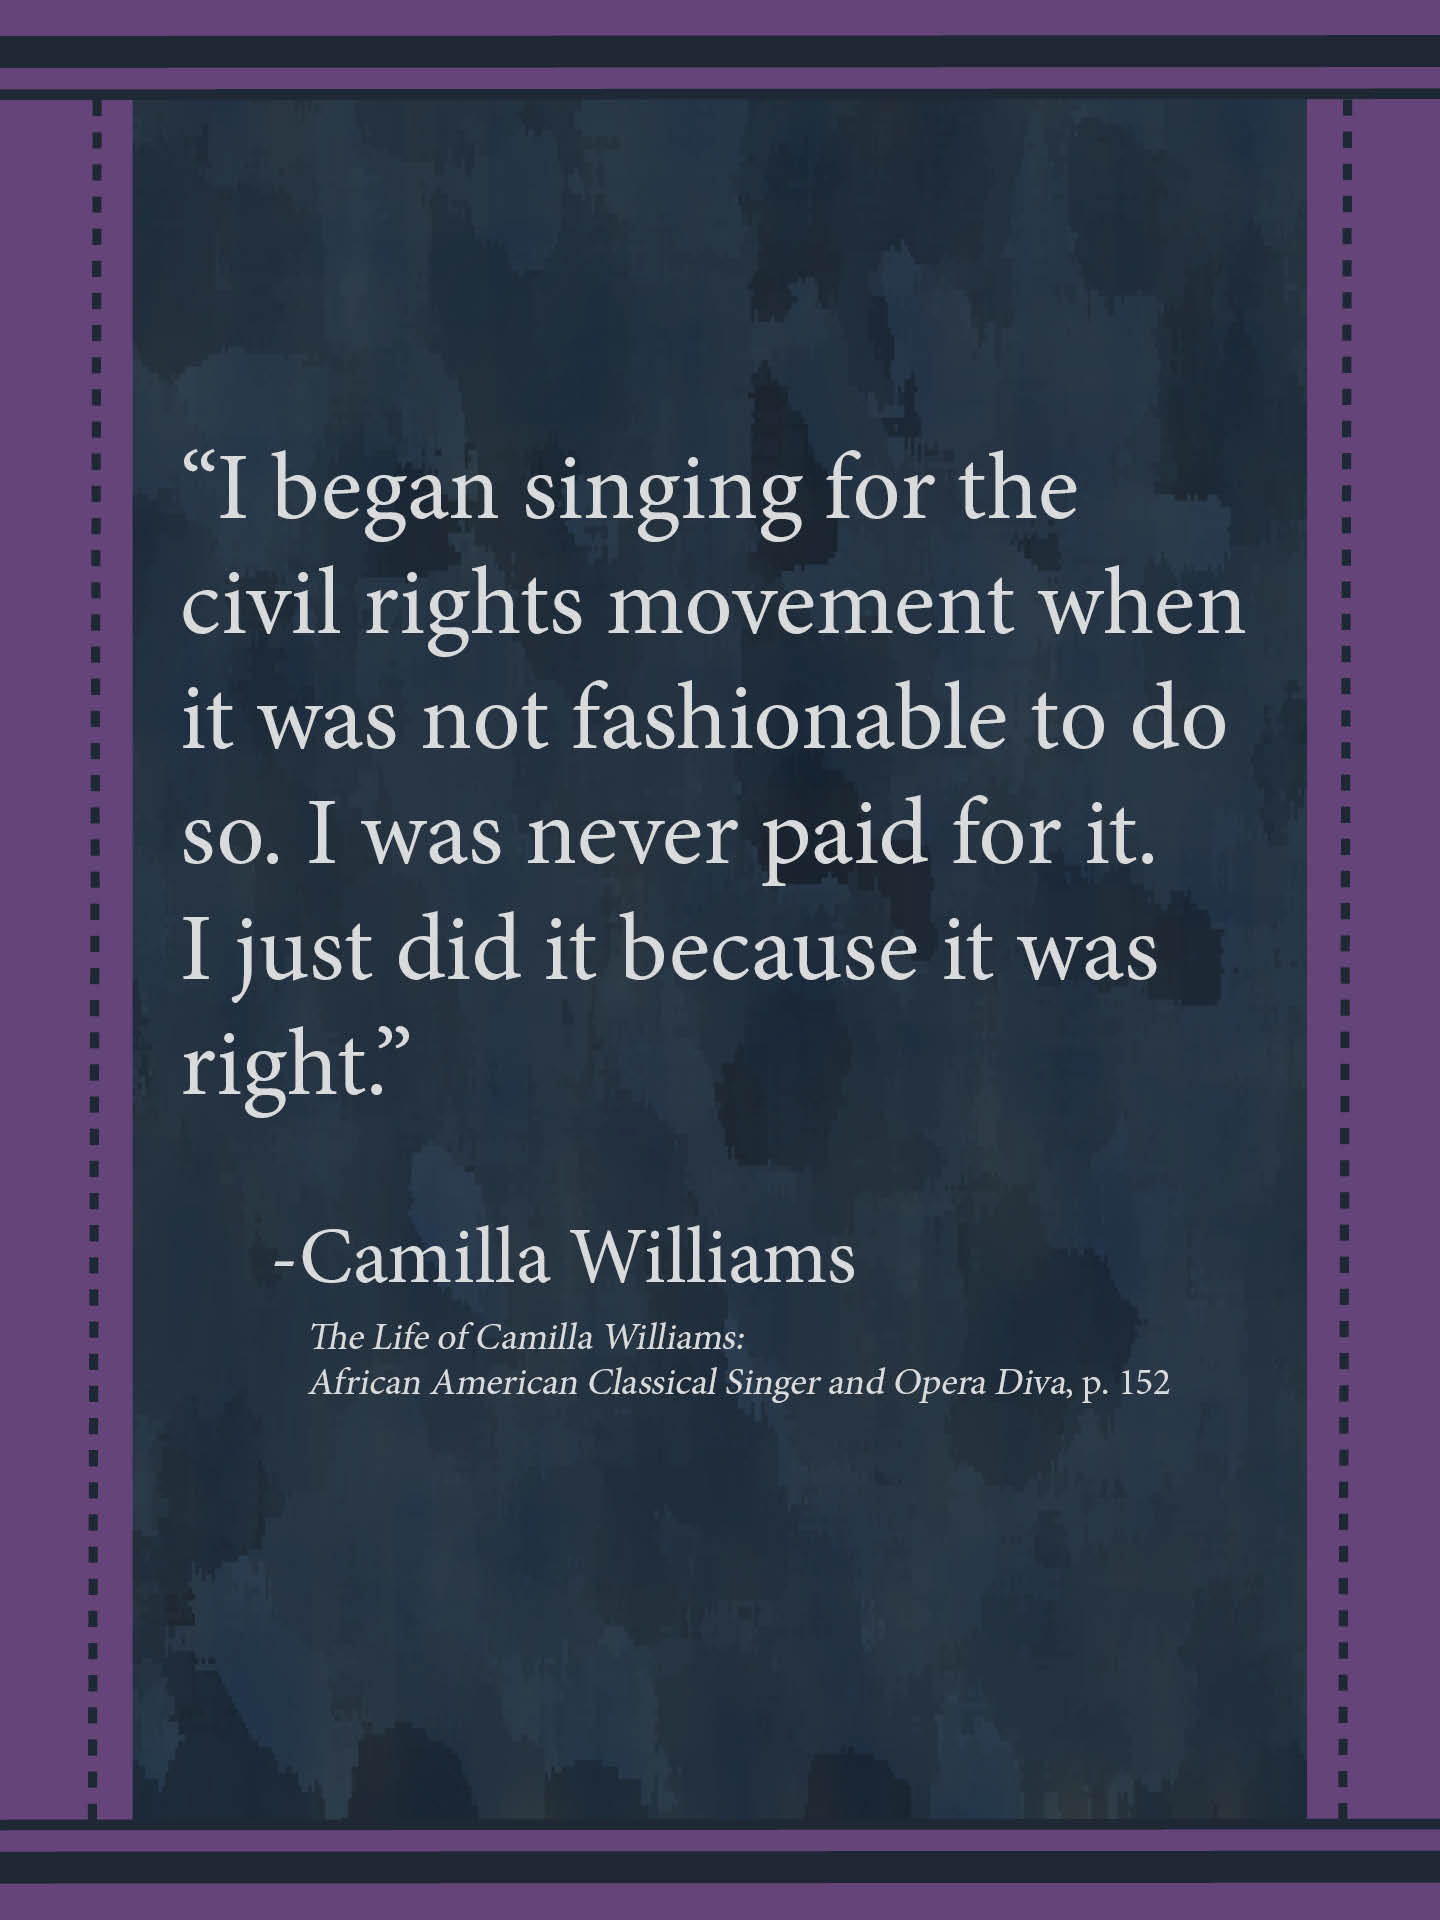 """Quote by Camilla: """"I began singing for the civil rights movement when it was not fashionable to do so. I was never paid for it. I just did it because it was right."""""""